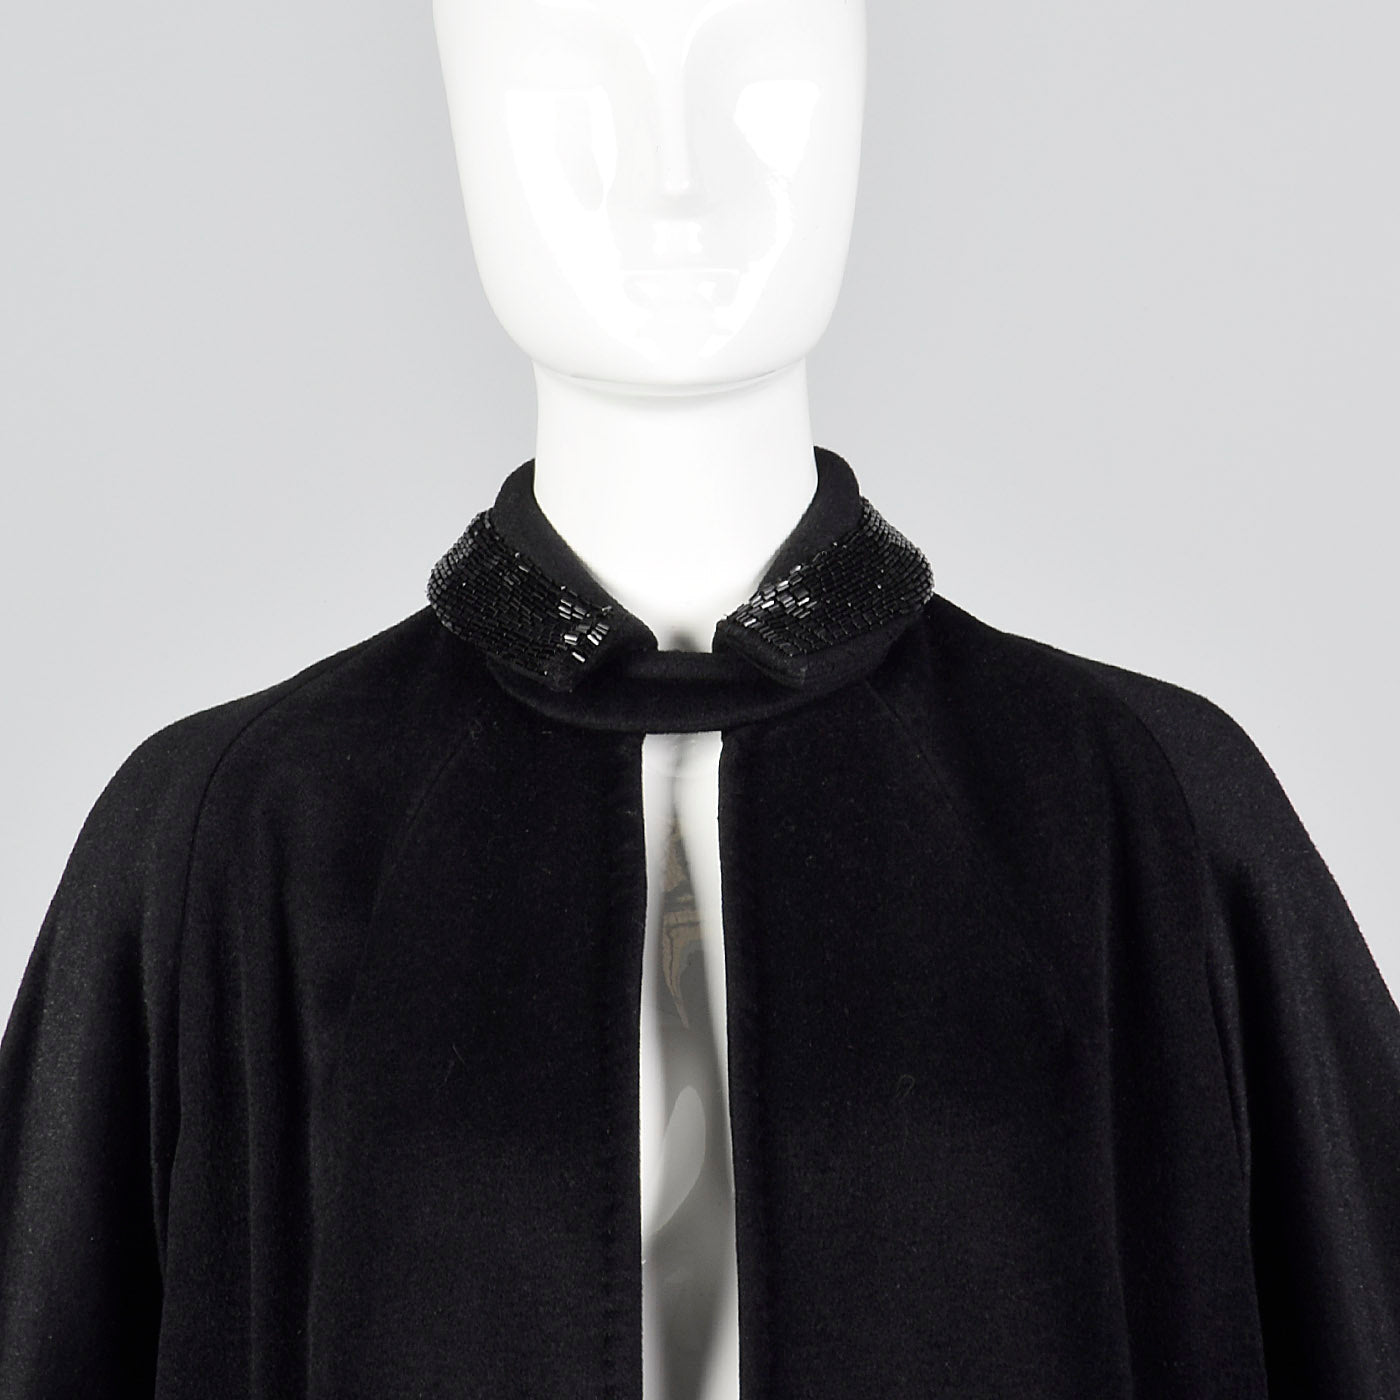 1950s Black Wool Swing Coat with Beaded Collar